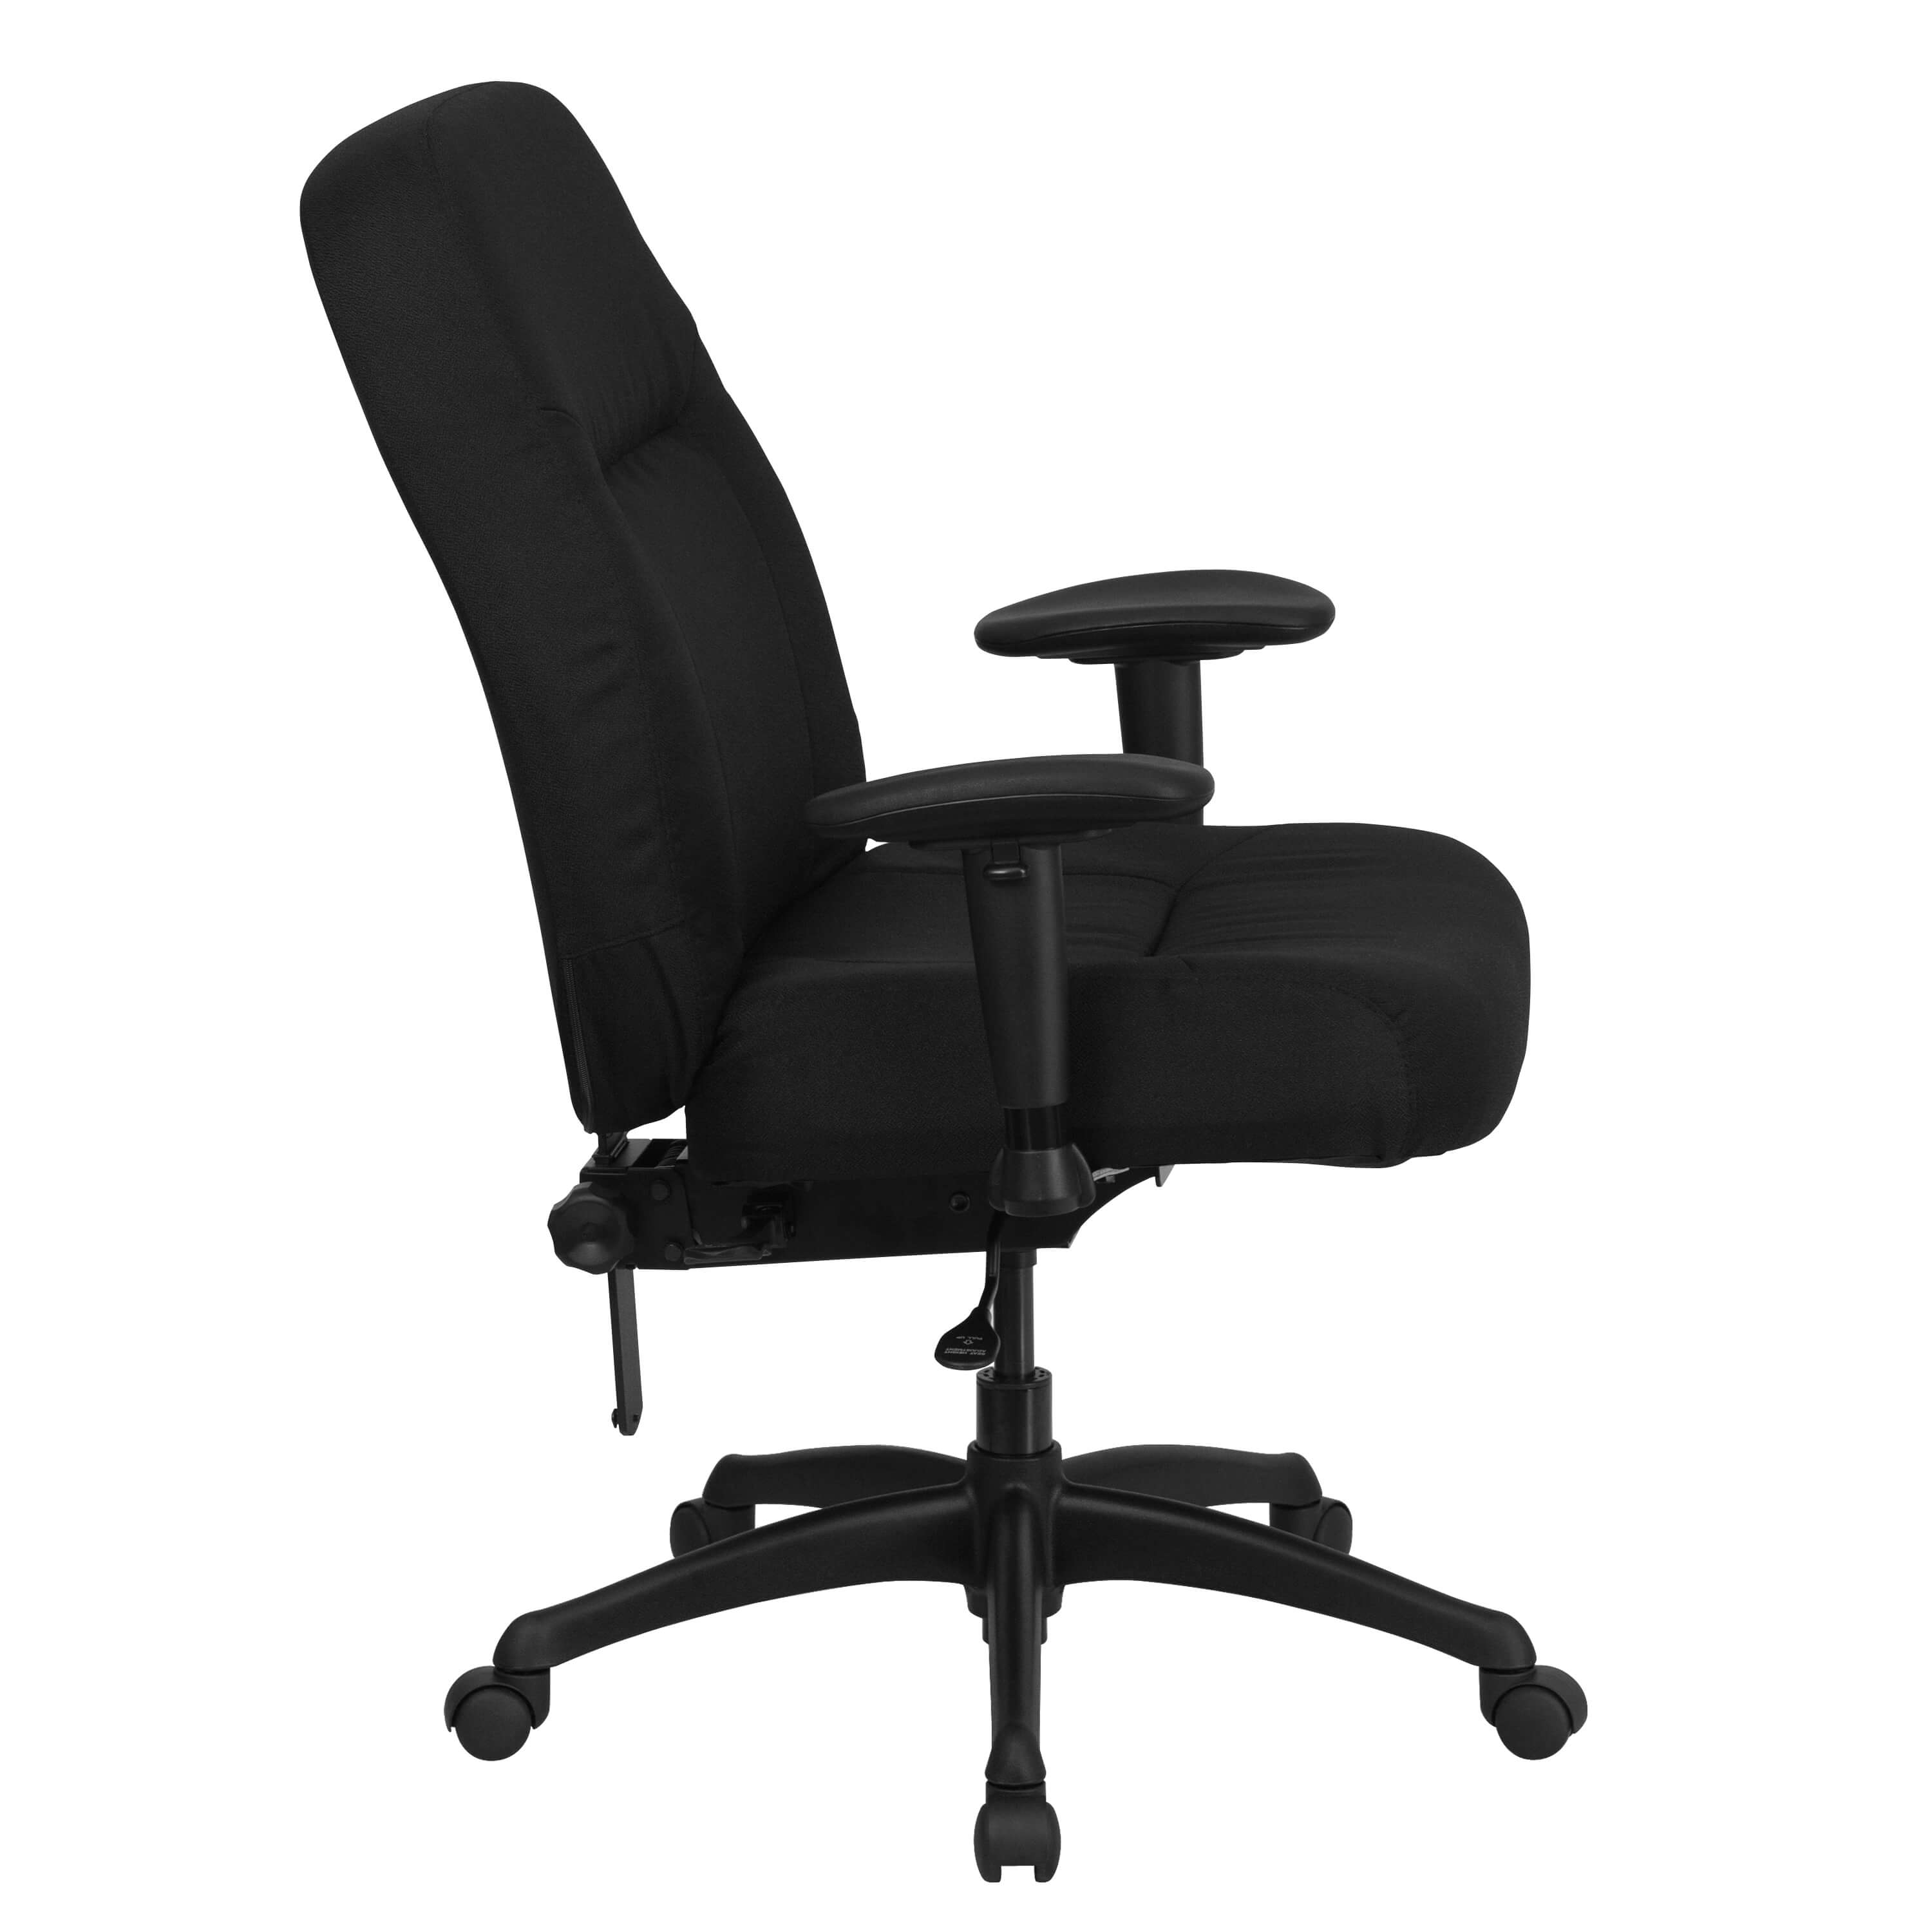 Heavy weight capacity office chair side view